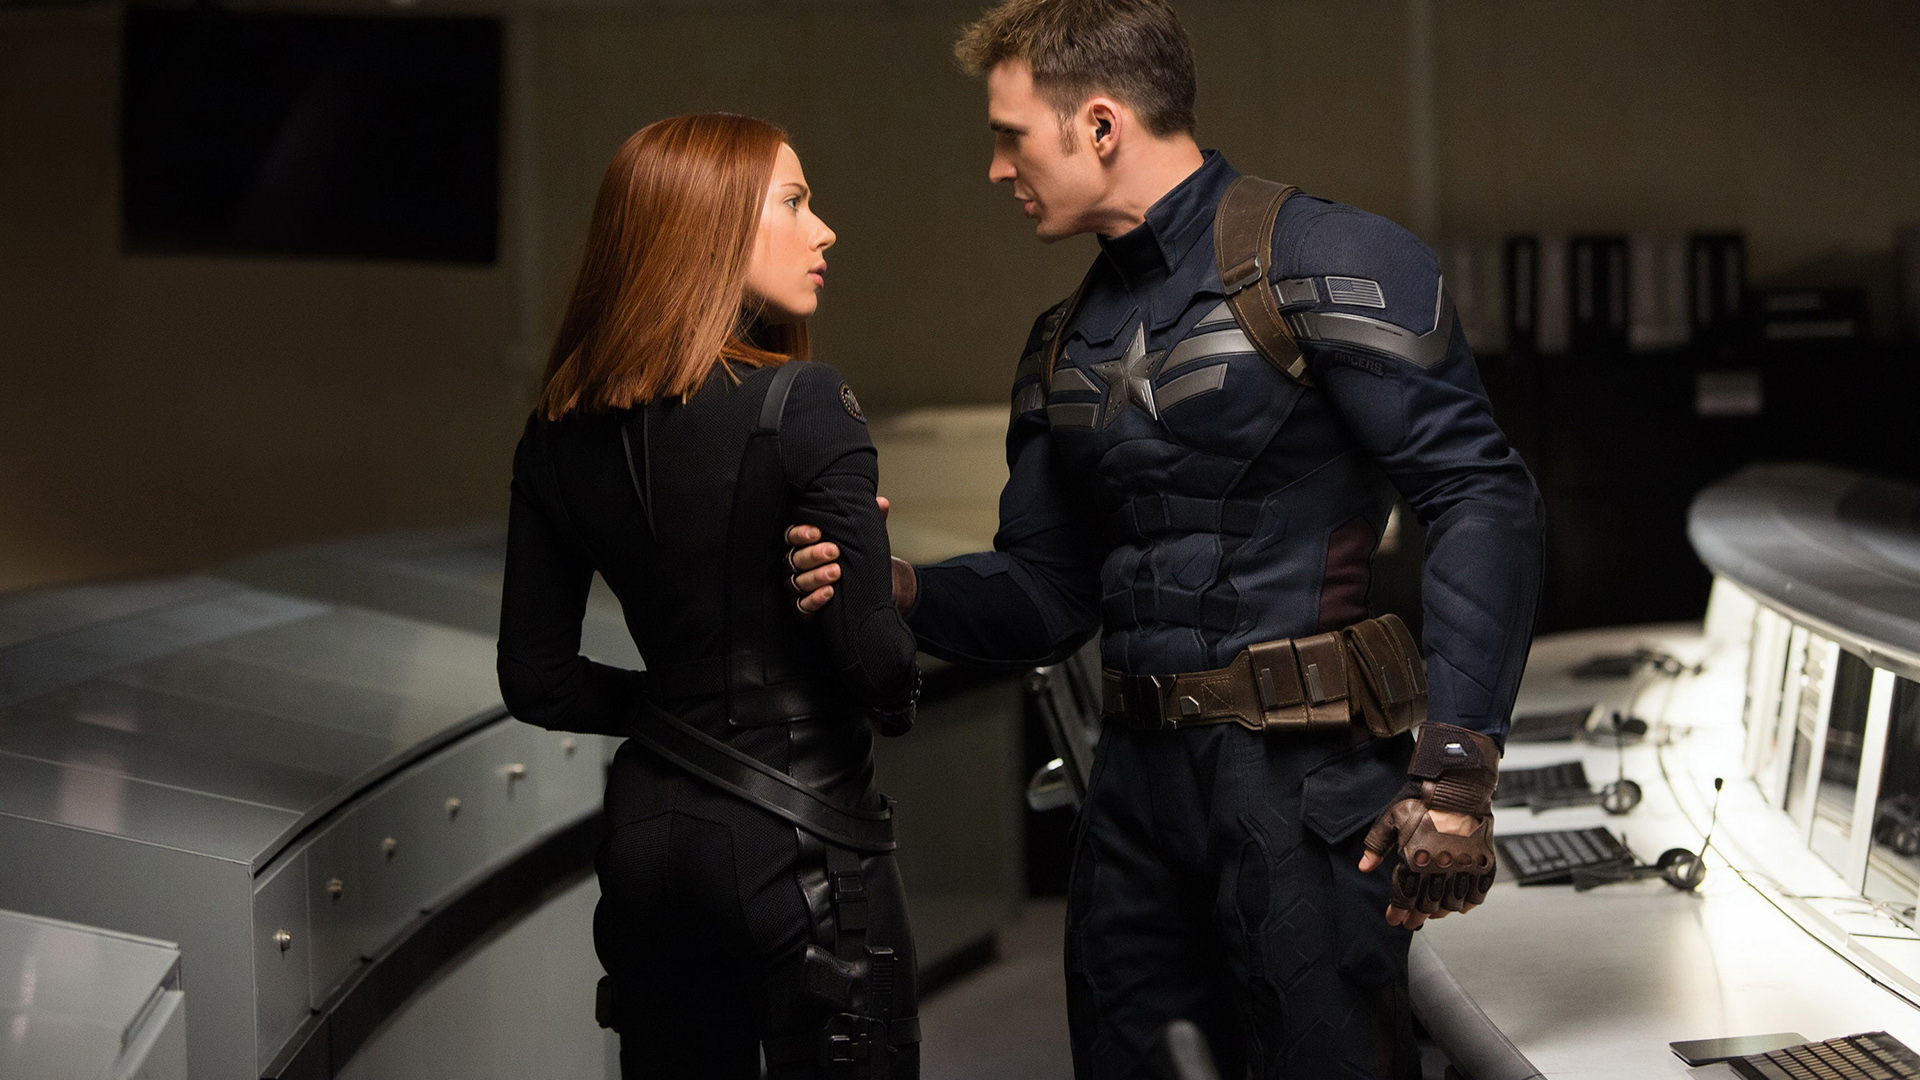 Ah the Good Old Days of Natasha and OOC Manhandling-Steve